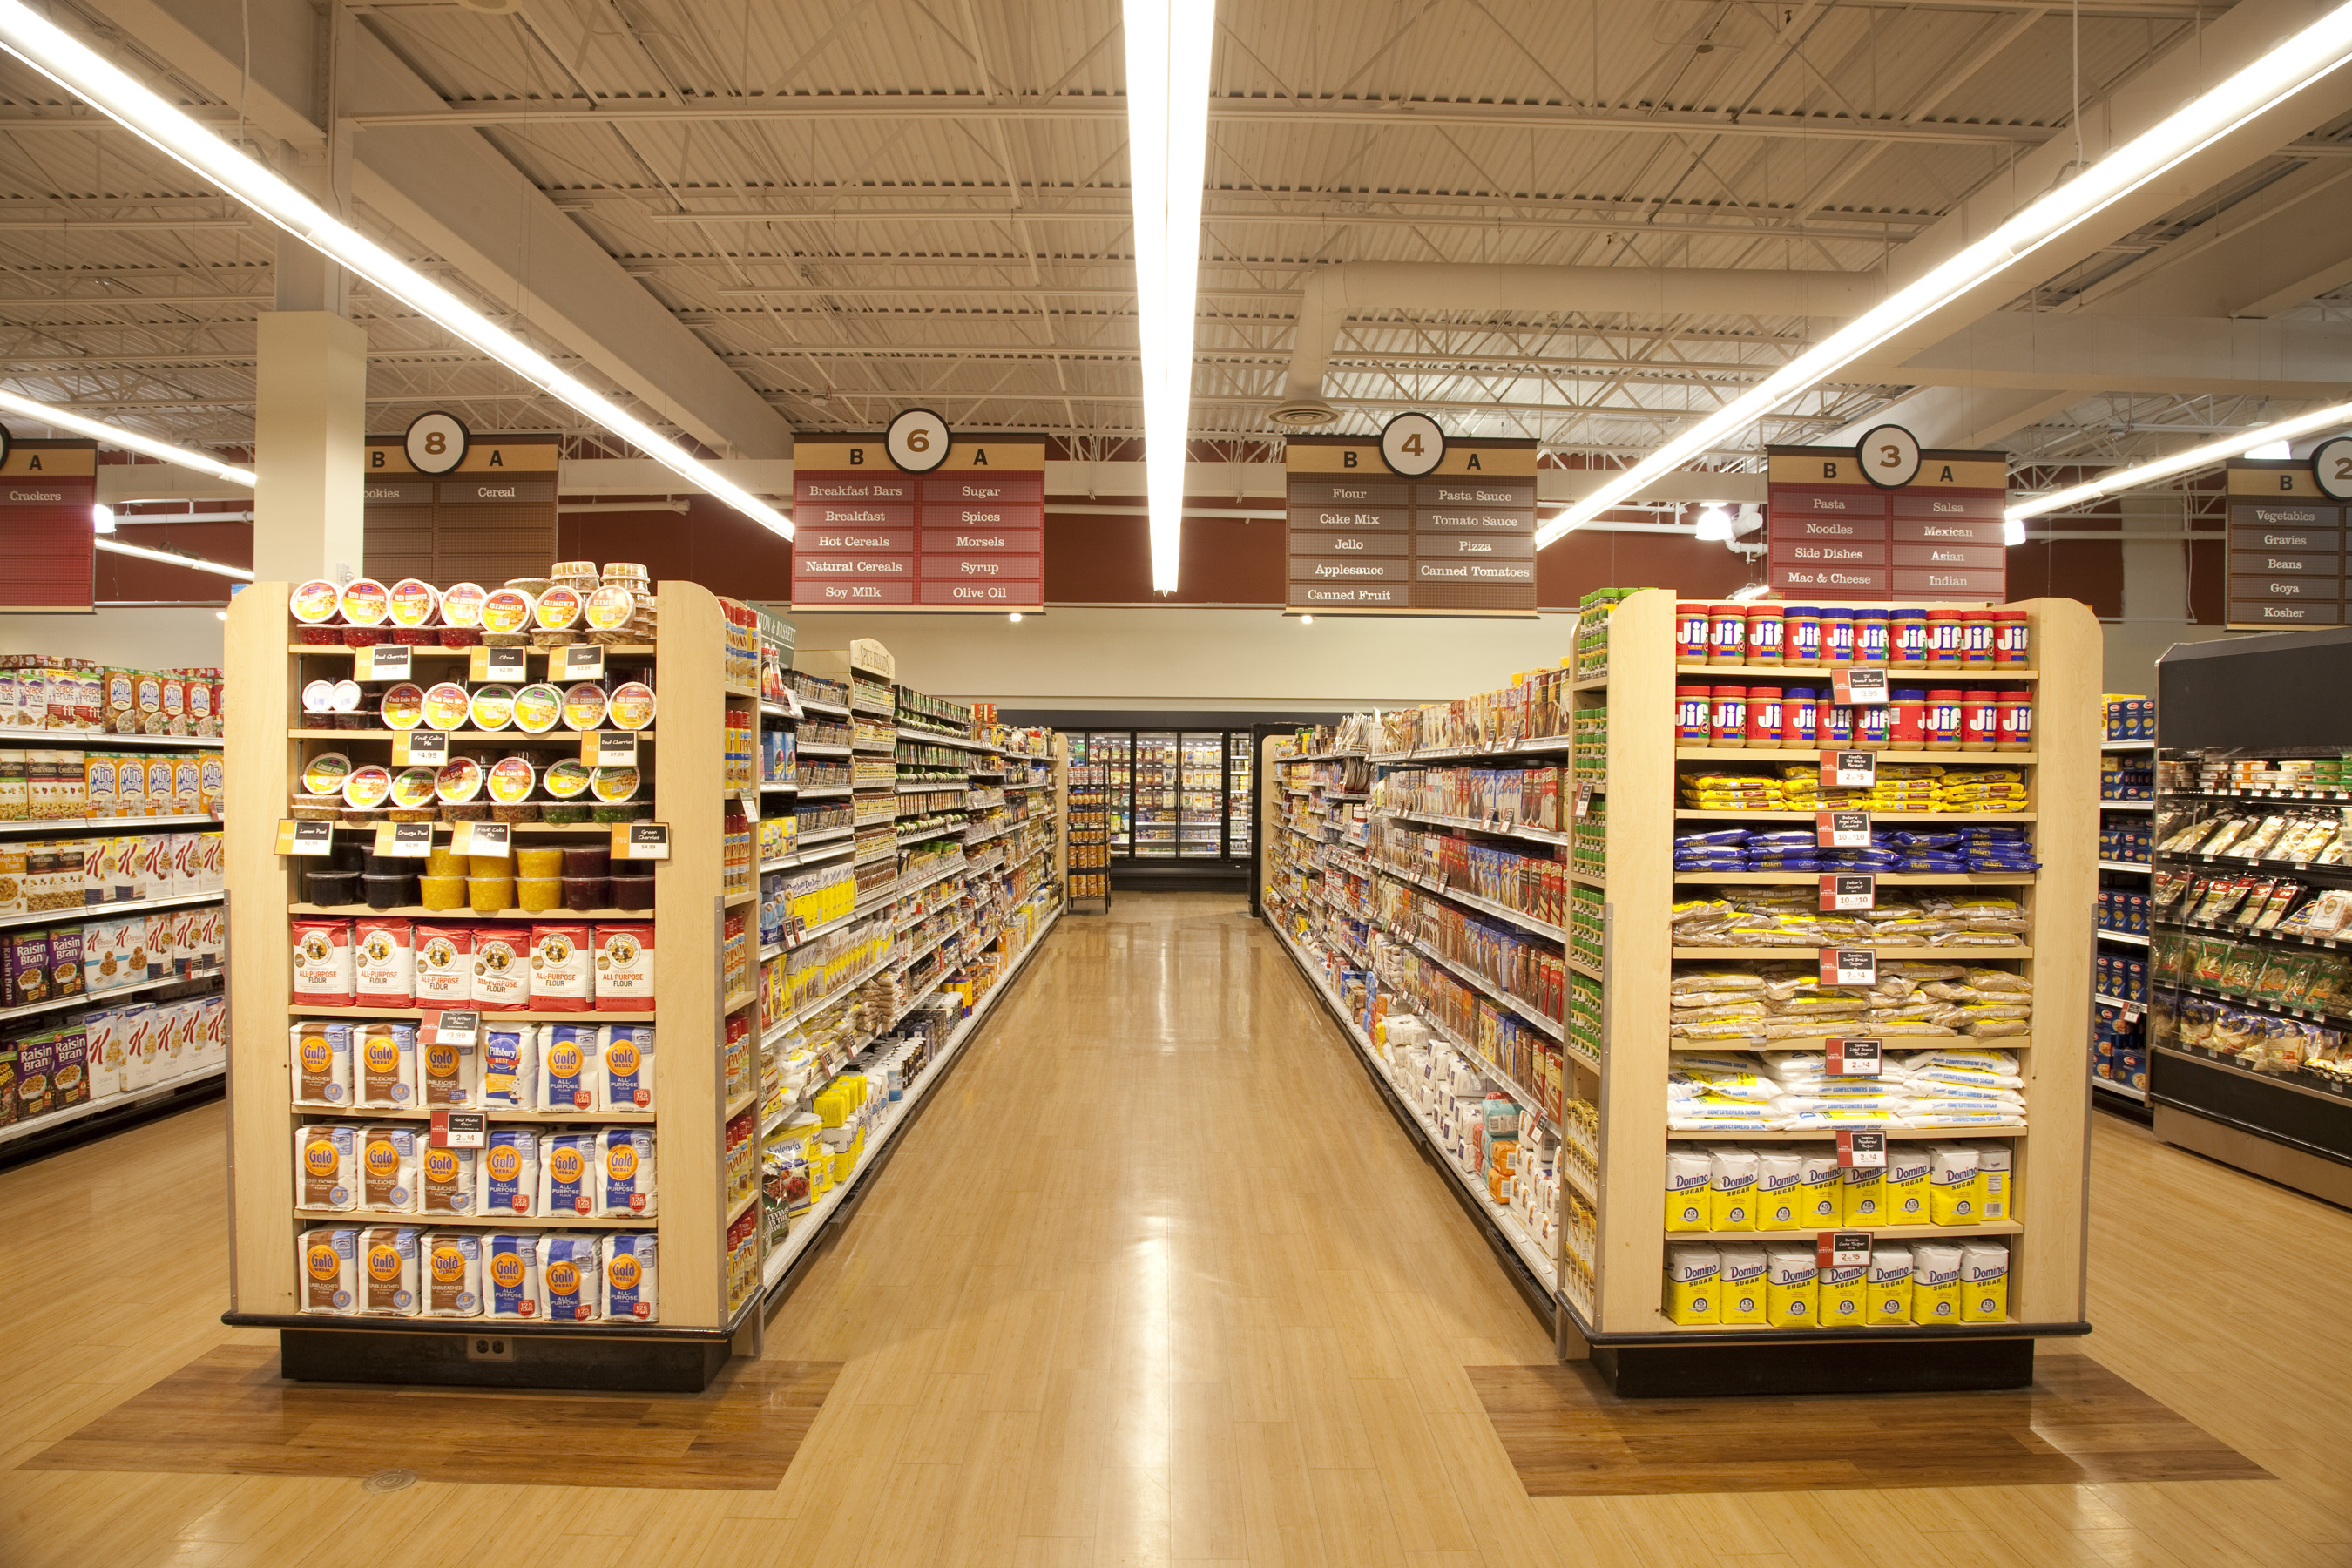 Grocer Finds Ge S New Led Fixture Is The Answer For Lighting That Lasts Ge Lighting North